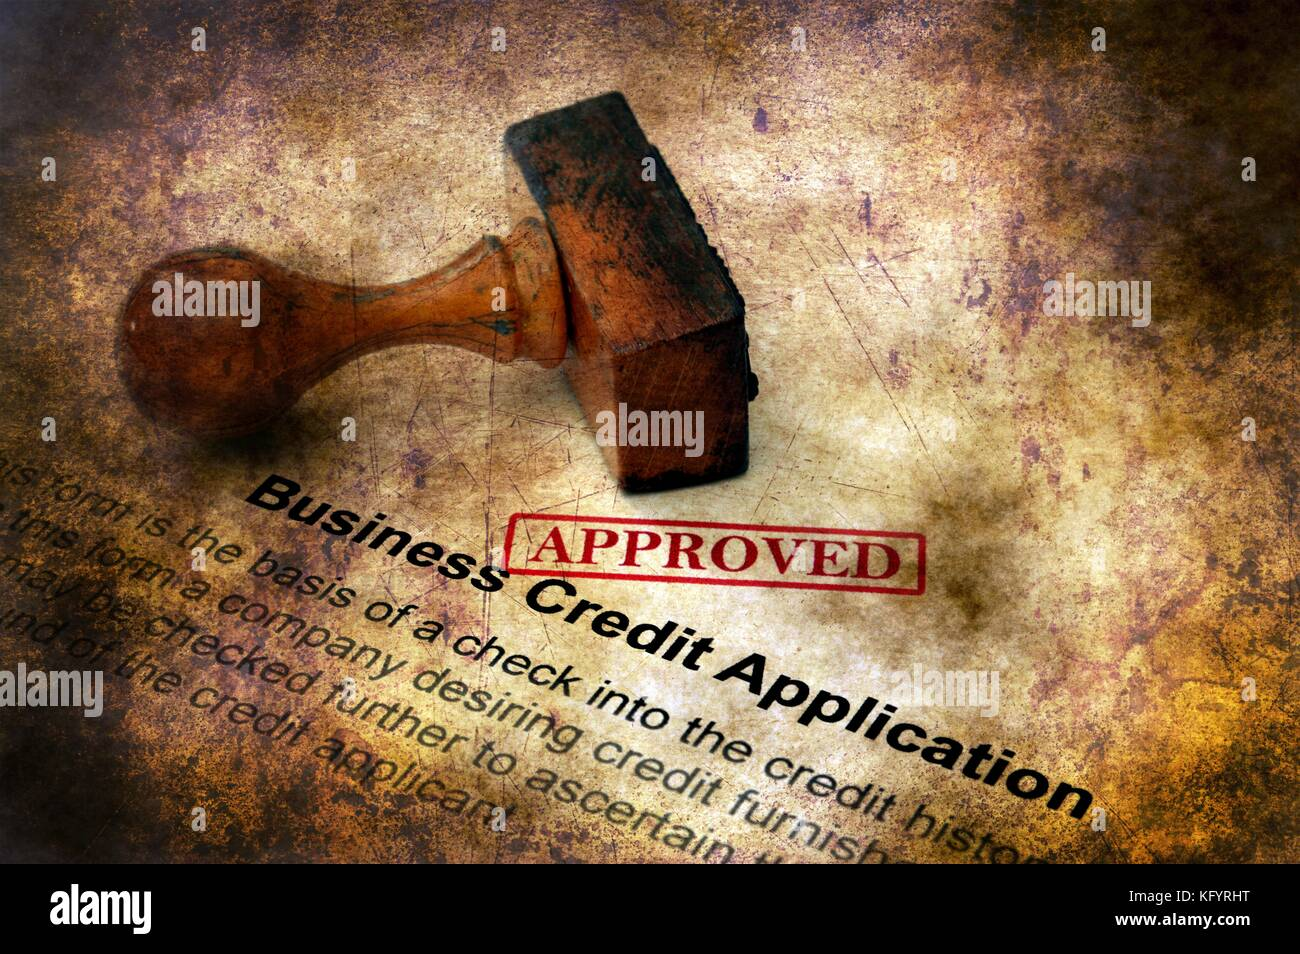 Business credit card application grunge stock photos business business credit application approved stock image reheart Gallery